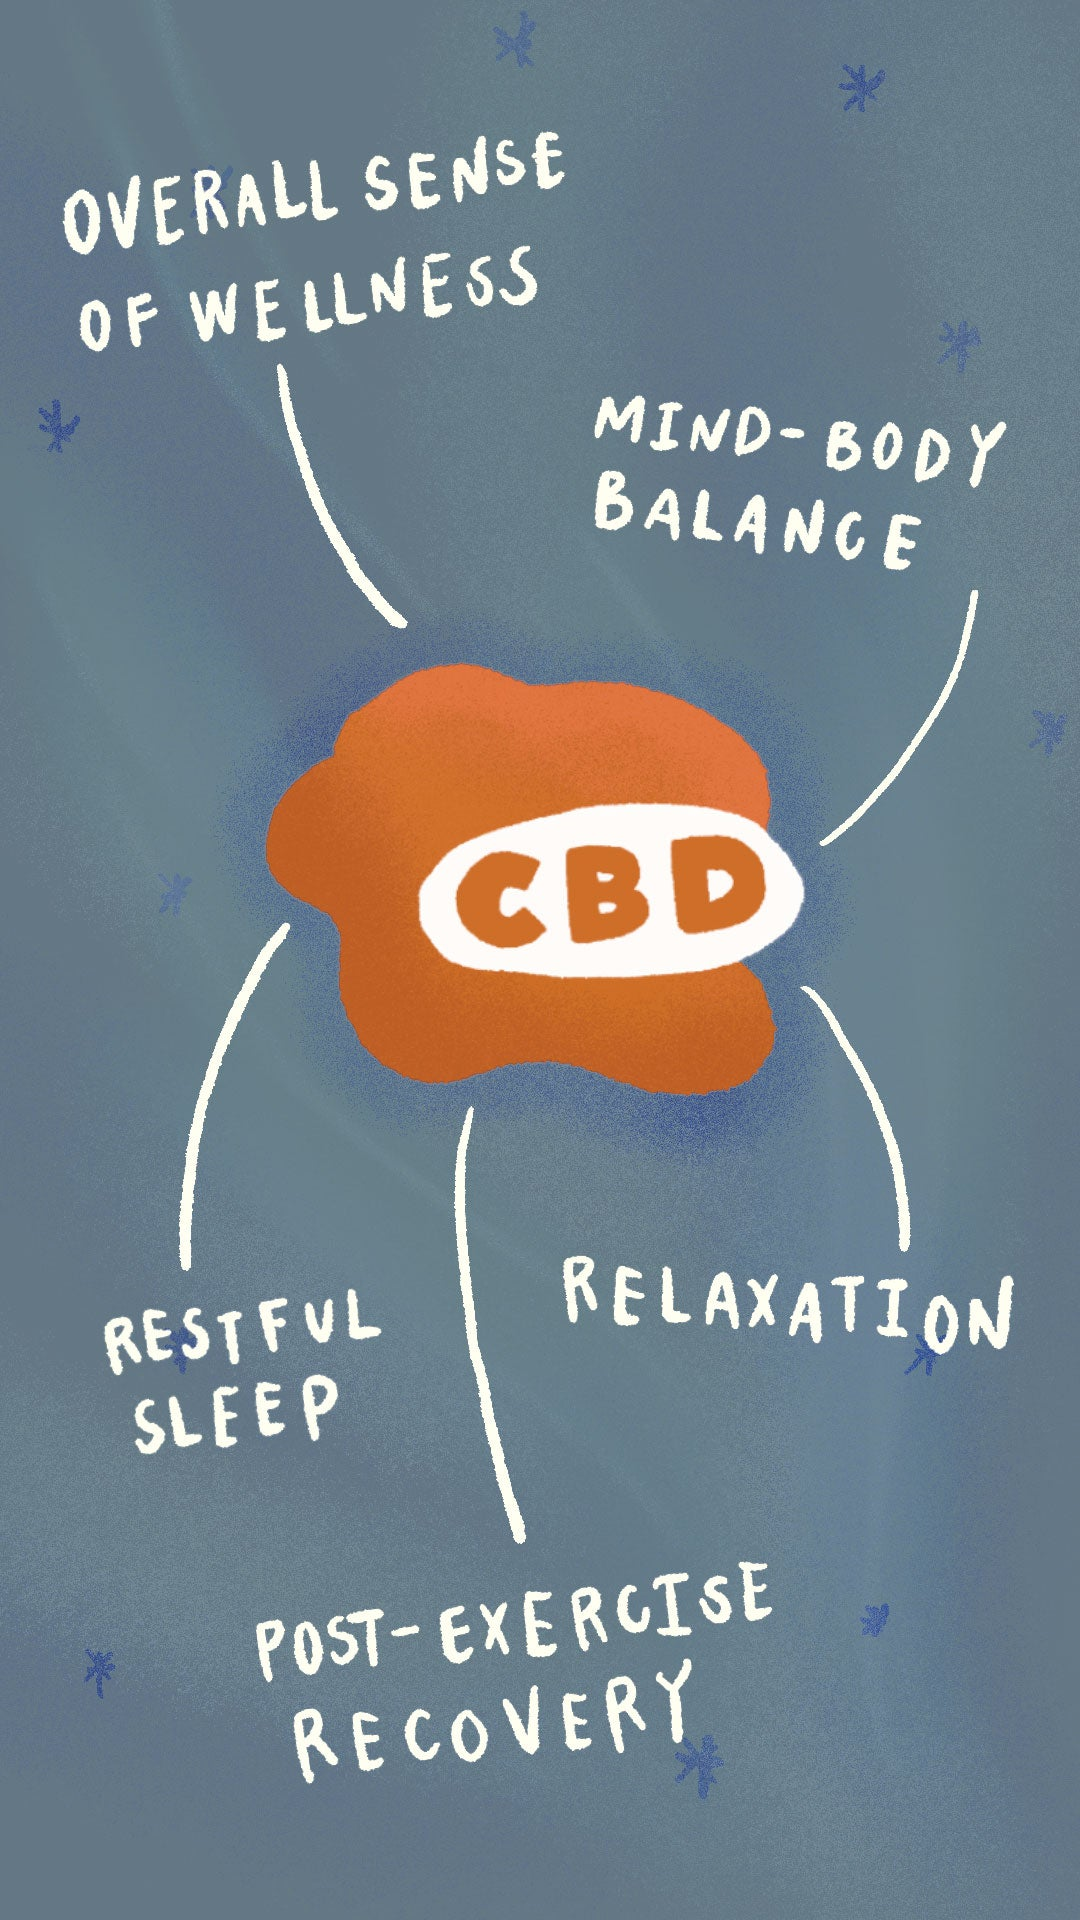 CBD uses include overall sense of wellness, mind-body balance, post-exercise recovery